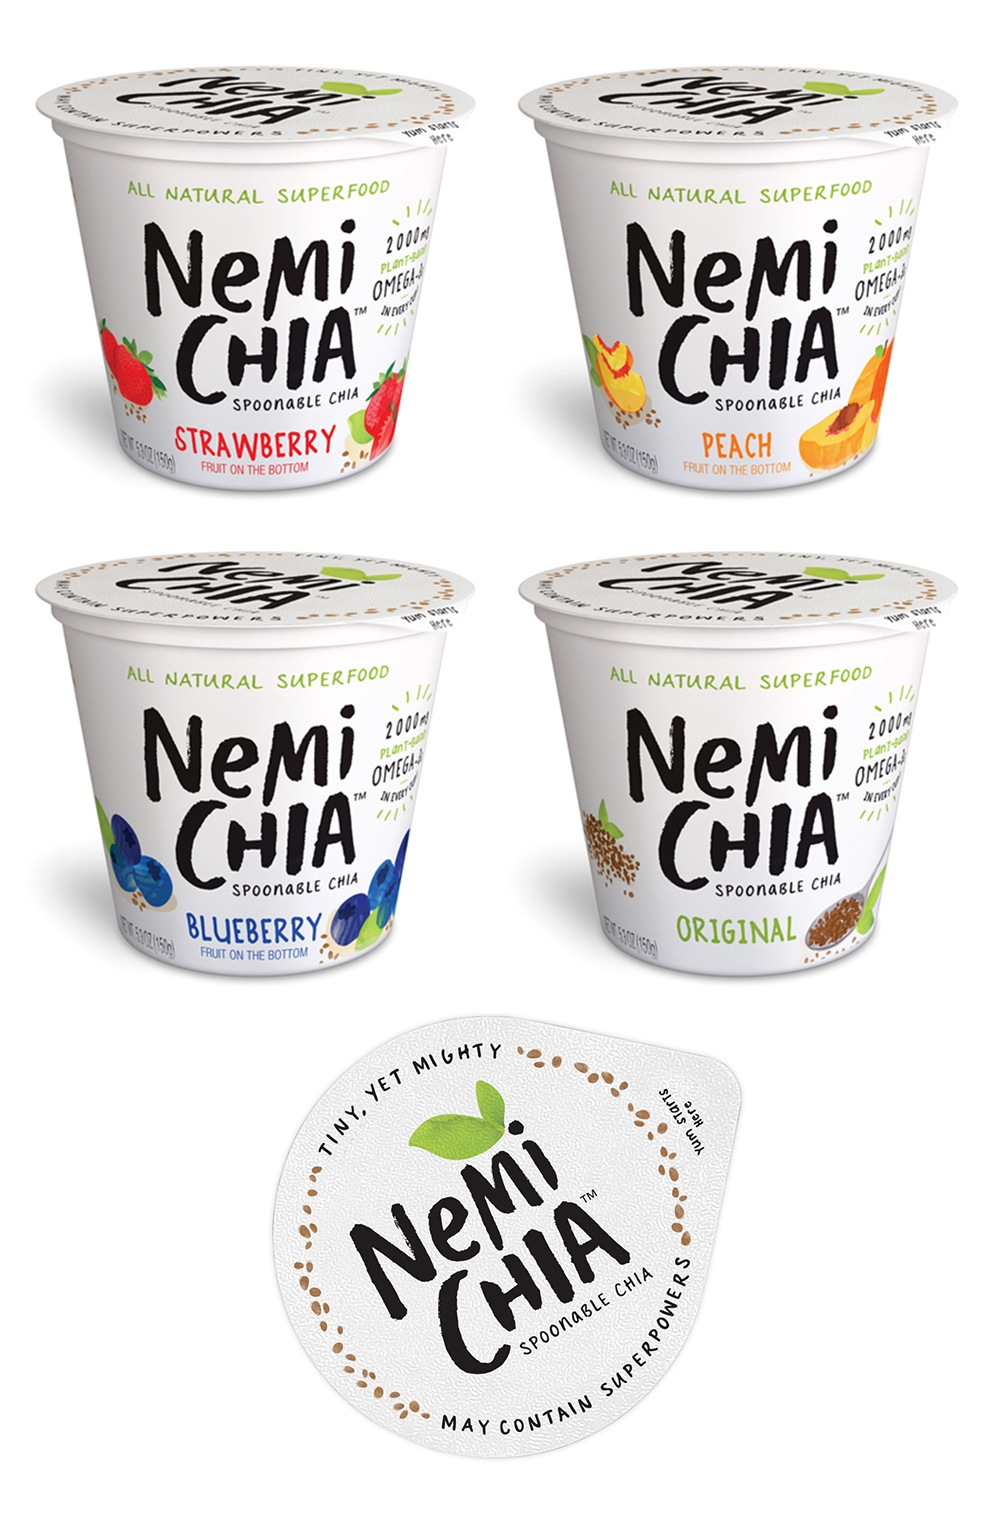 NemiChia - Brand Identity & Packaging Design